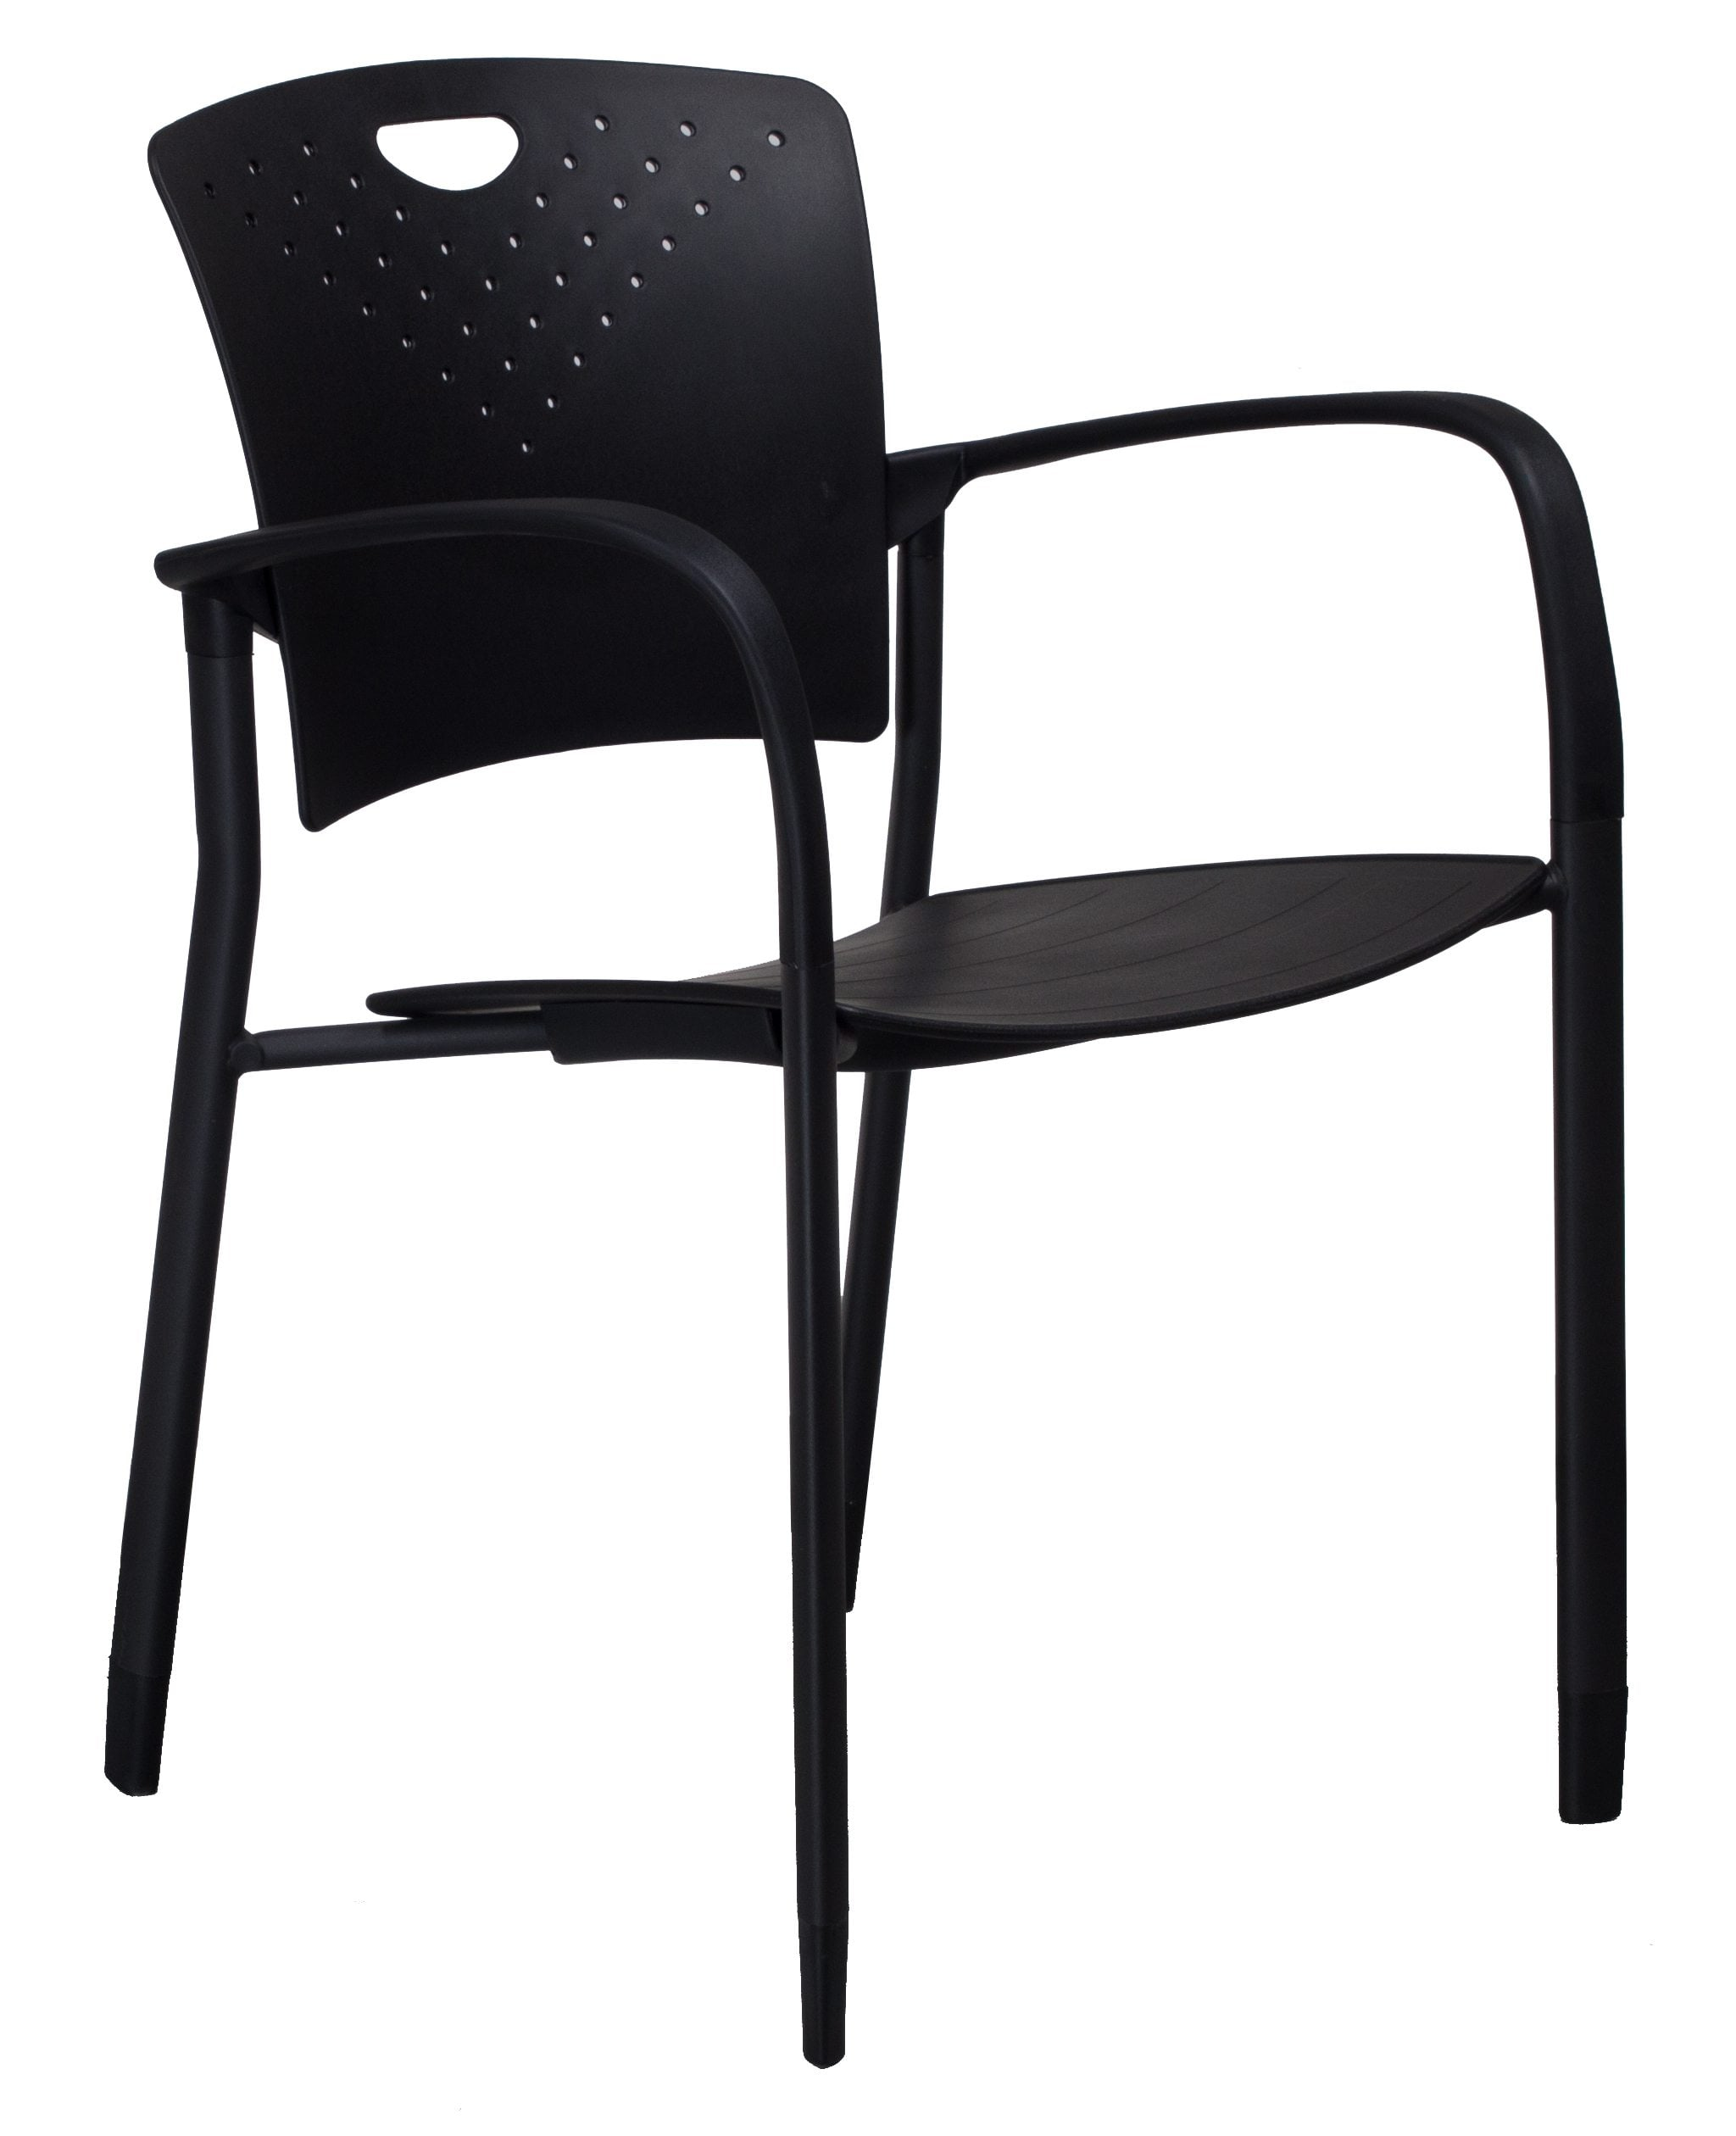 ergonomic chair brand cane bottom chairs go new stack black national office